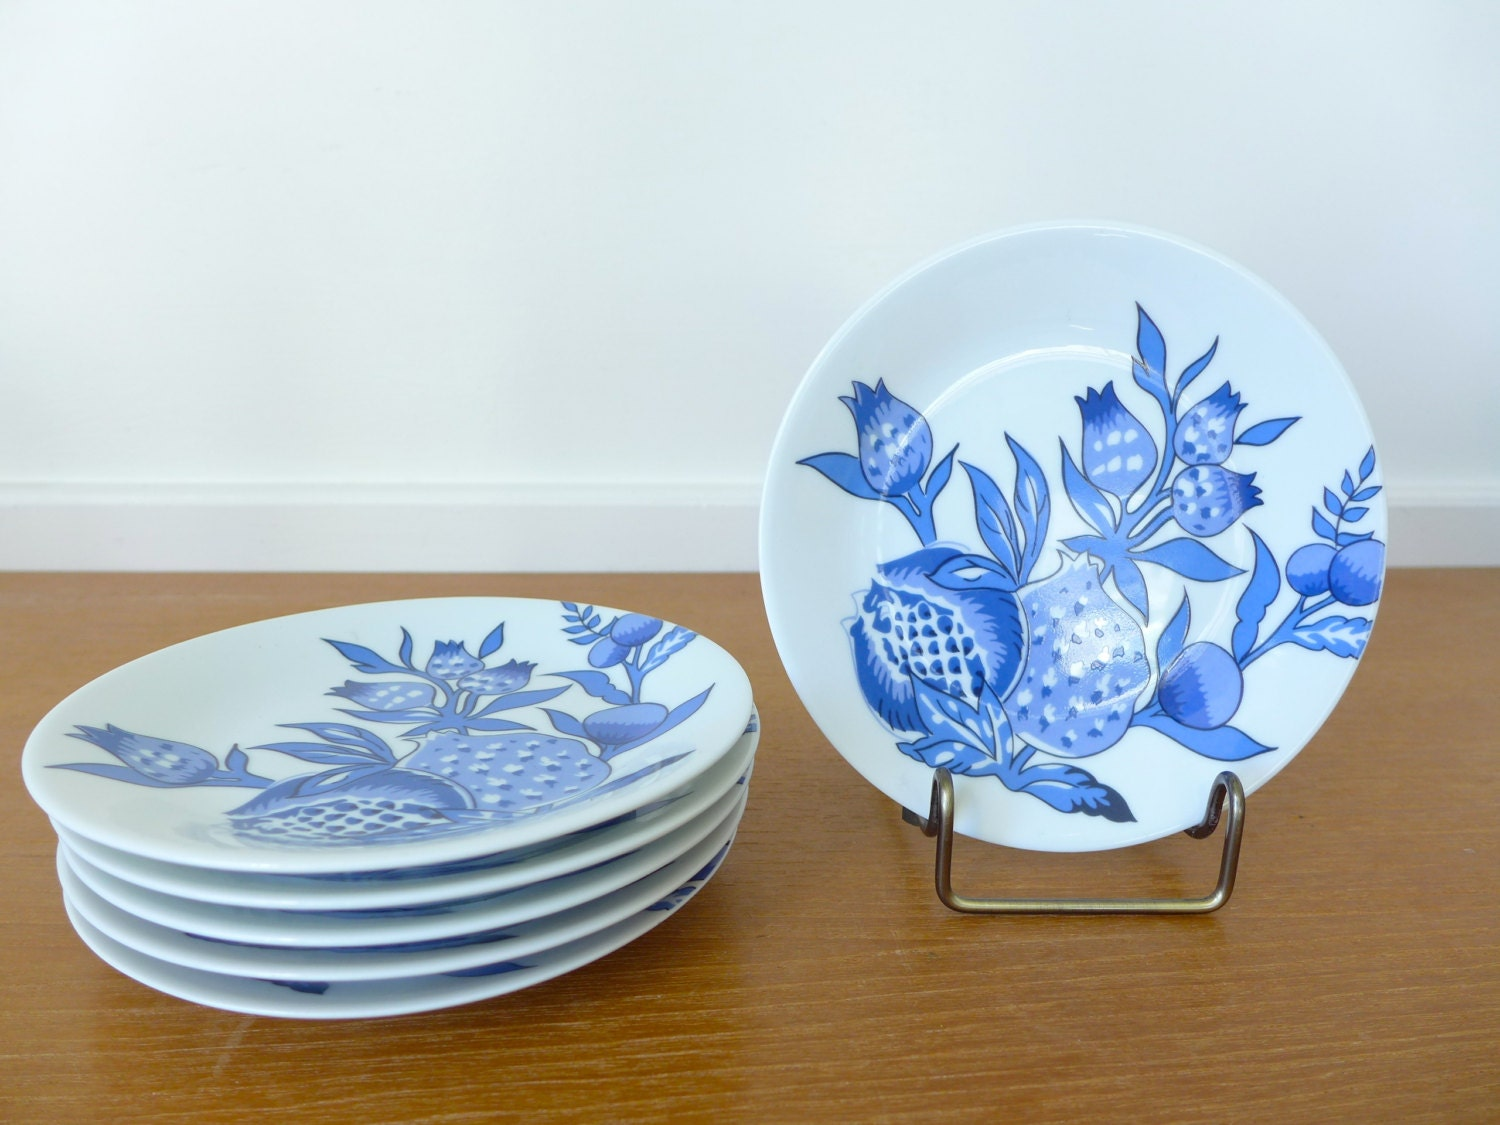 Six limoges bracieux by patrick frey canape or bread plates for Philippe deshoulieres canape plates